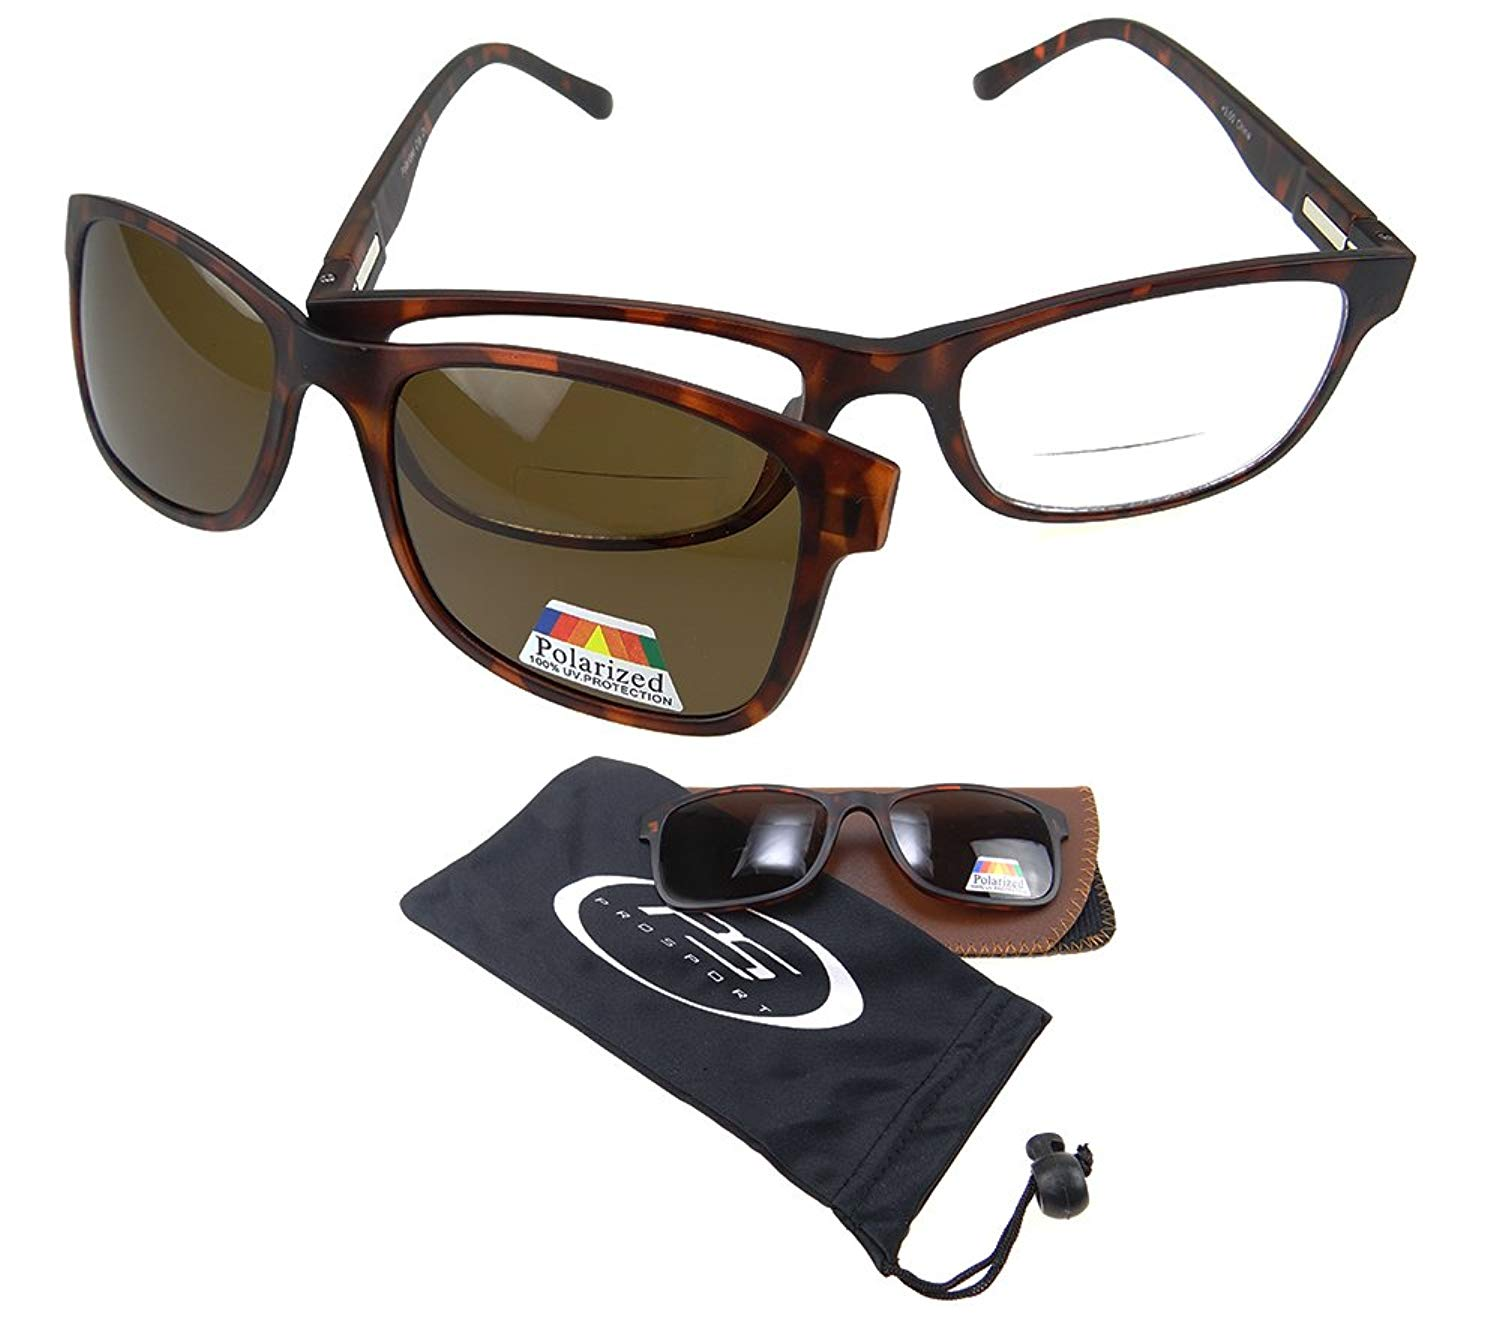 6ff1c55d0685 Get Quotations · Polarized Bifocal Readers. Bifocal Glasses & Easy Magnetic  Polarized Clip-On